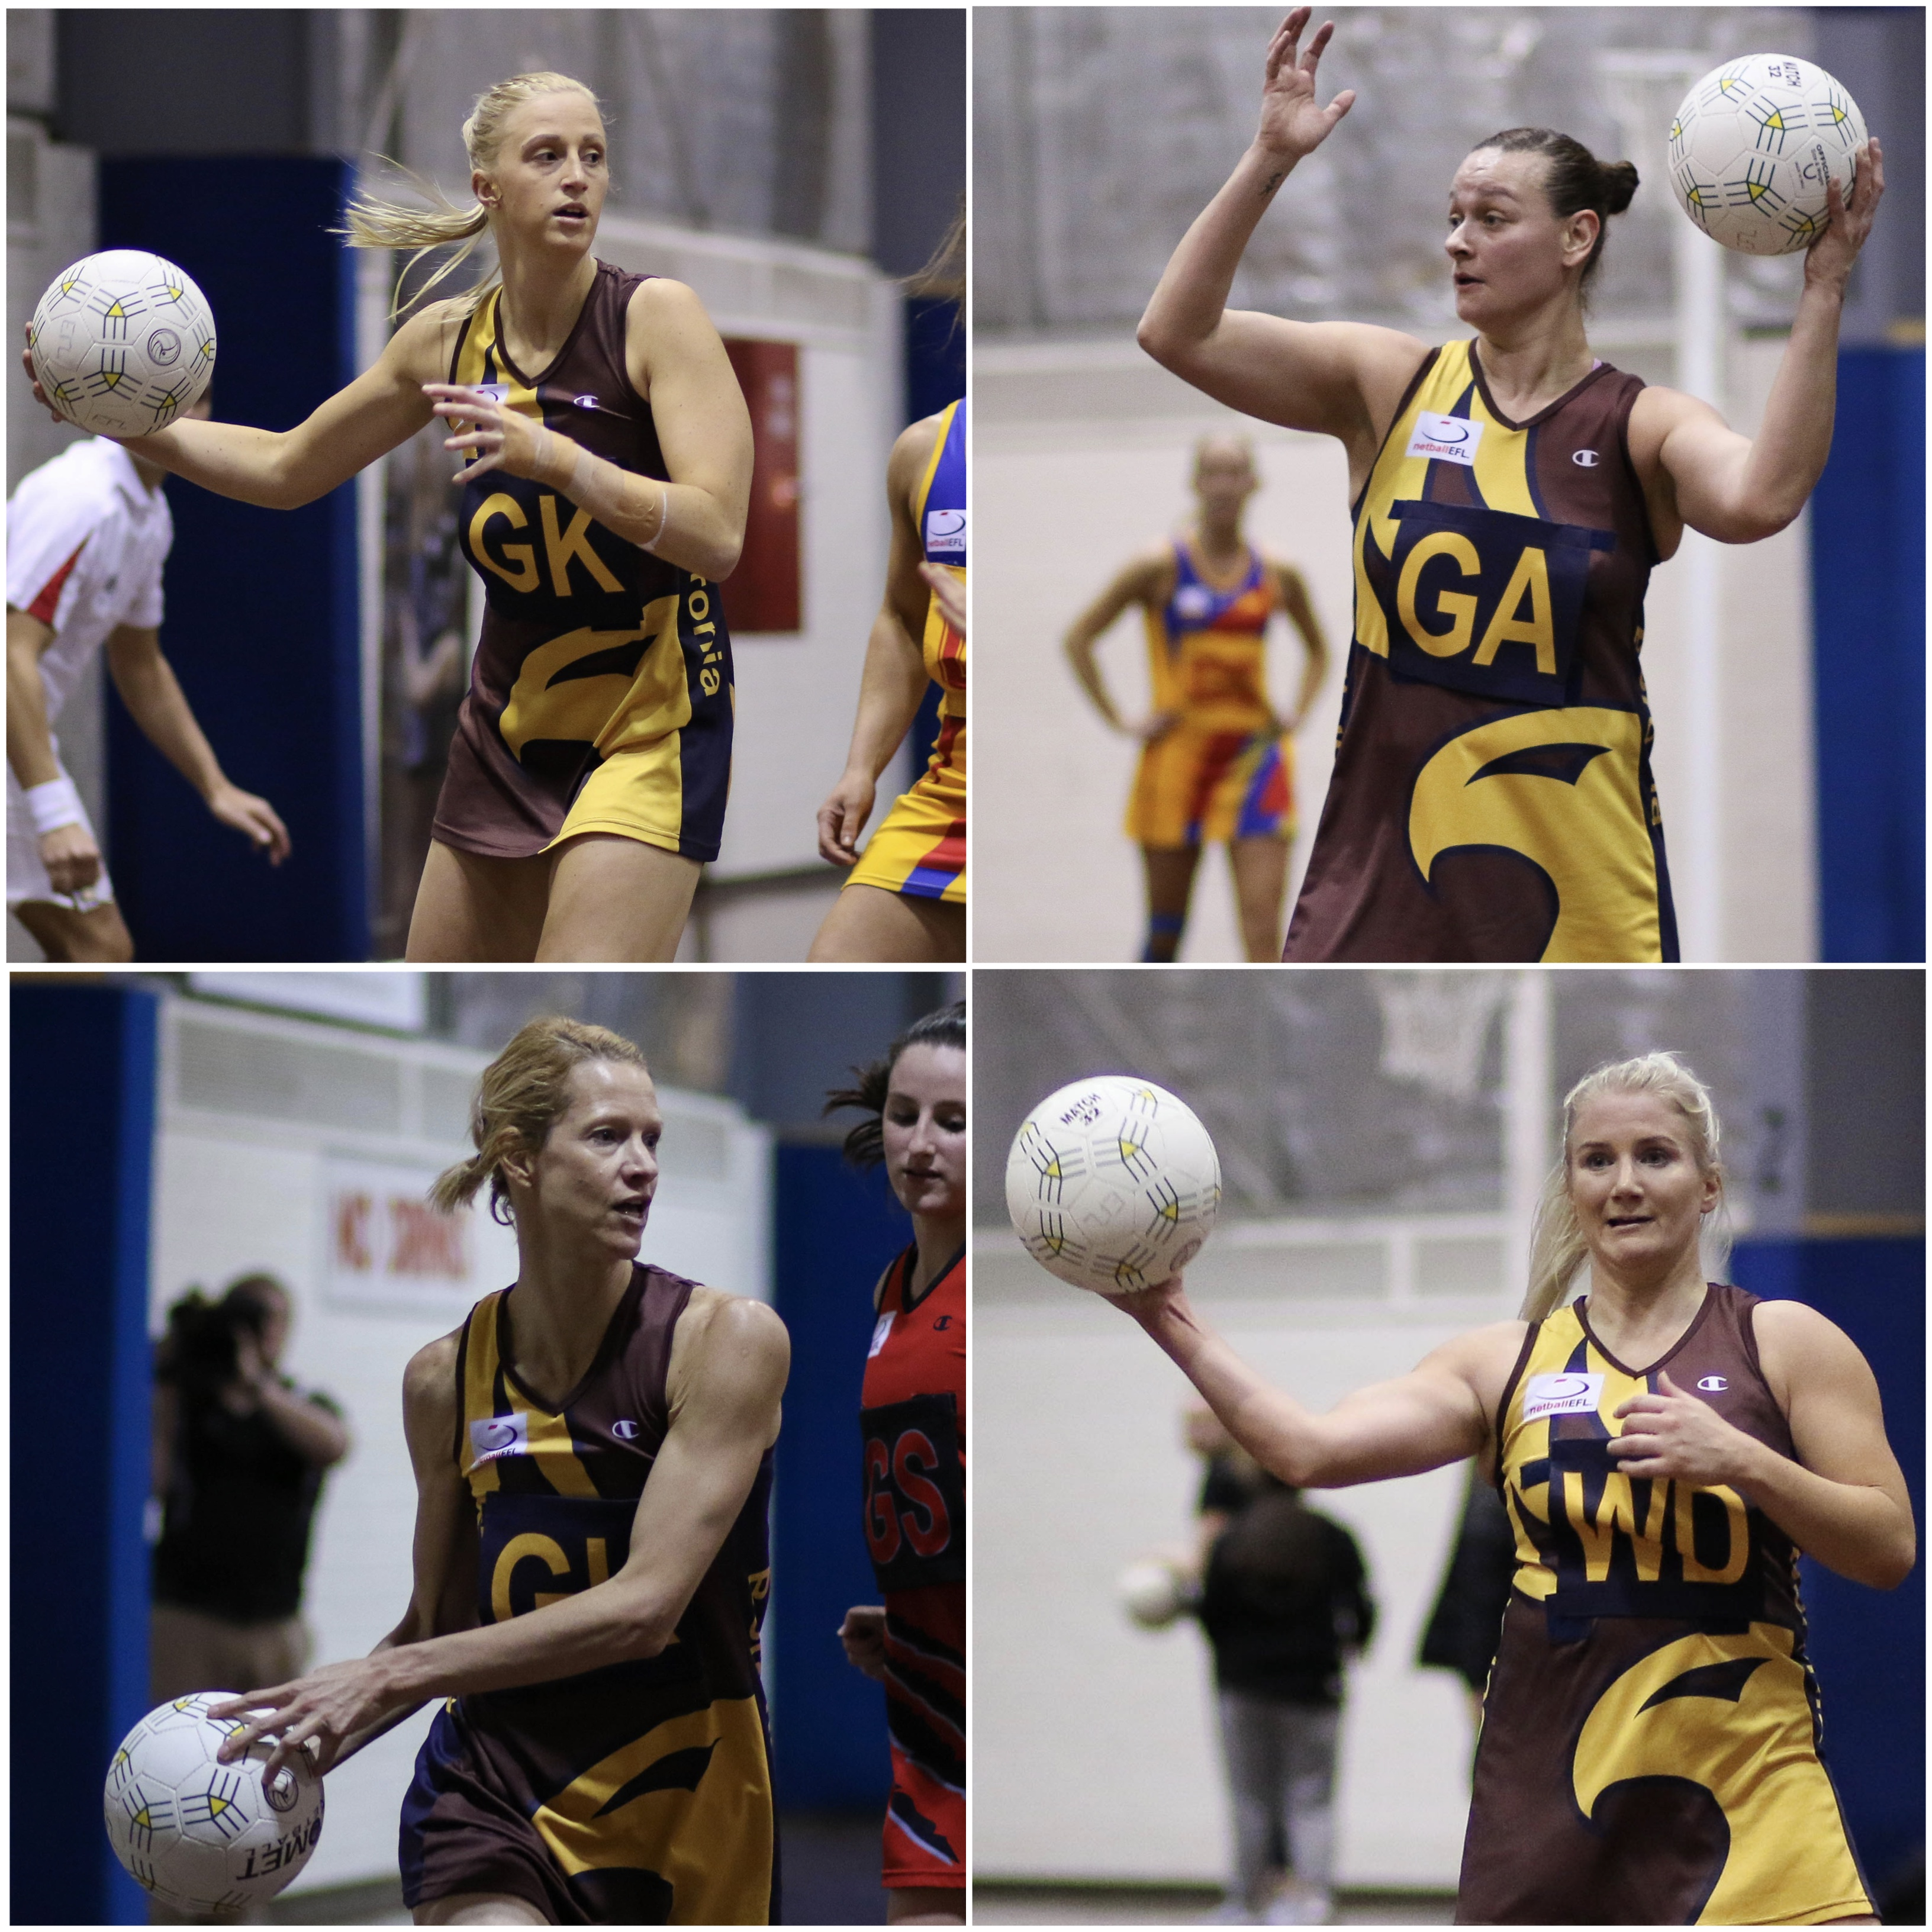 Nominees for Netball 2017 Team of the Year